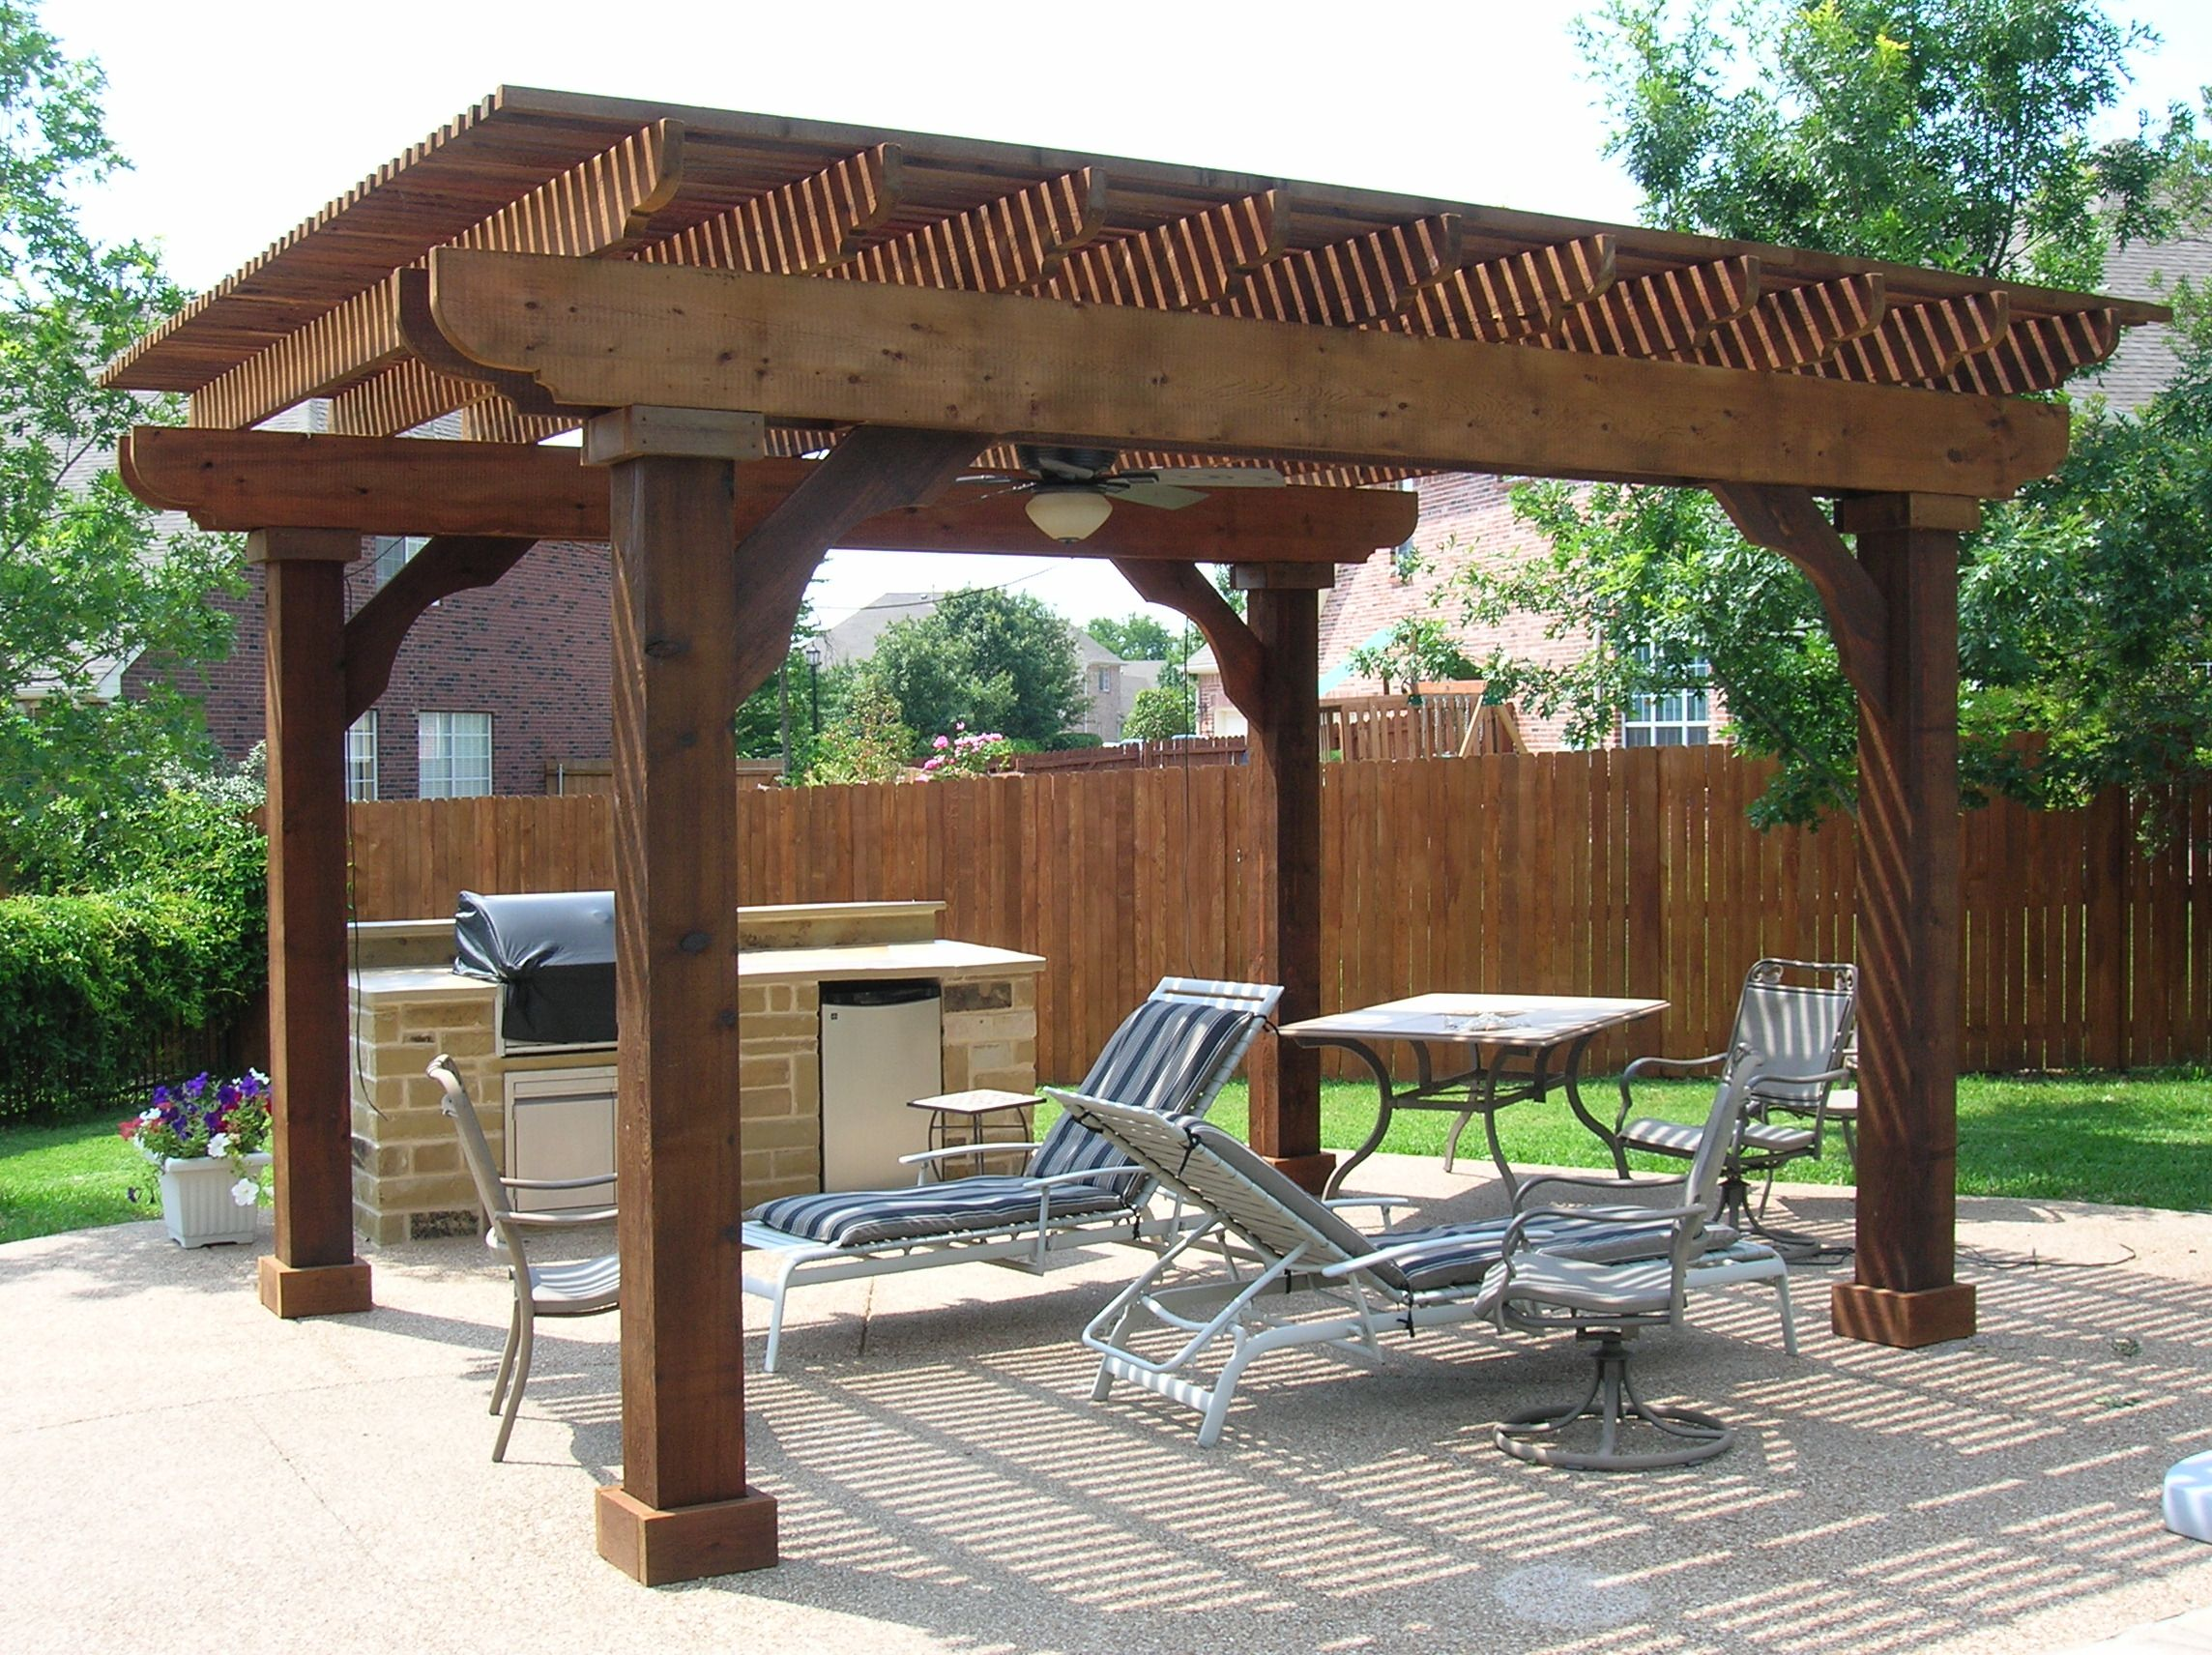 ideas how house on patio costco full covers metal best patios back of covered wood build pictures cover diy attached story to a kits roof size two